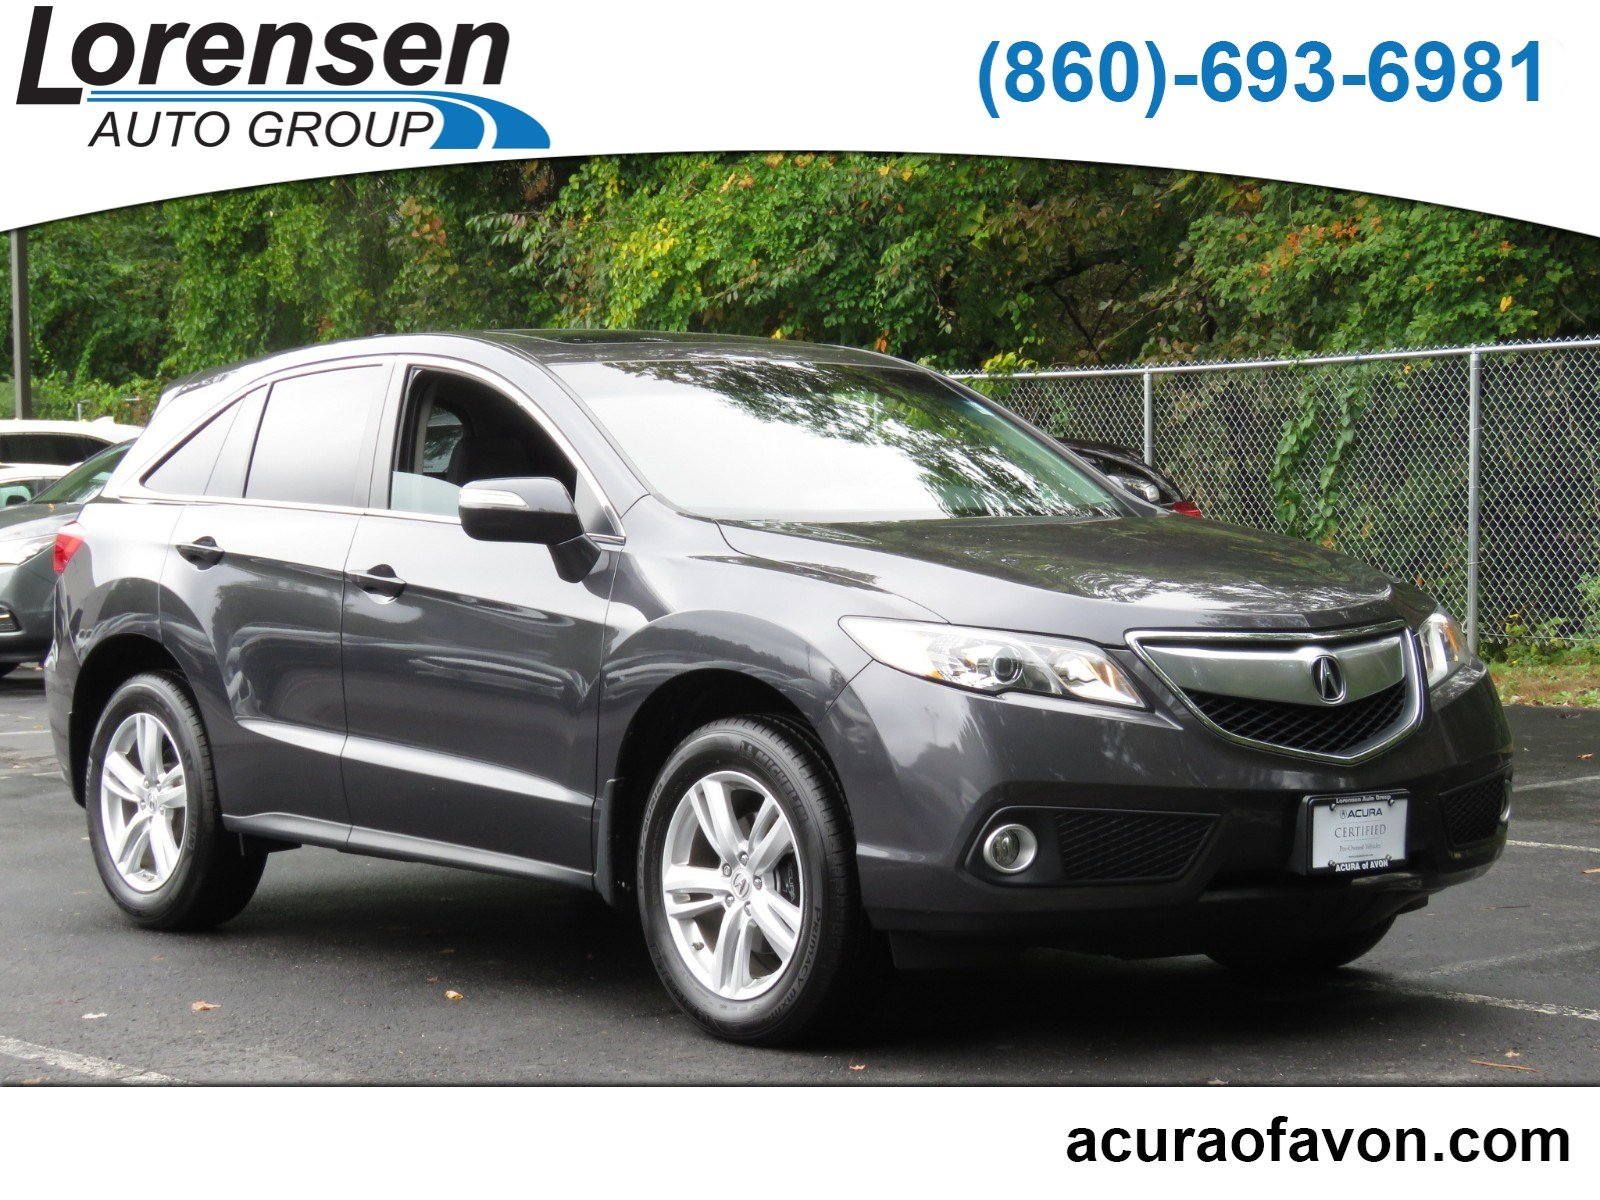 Pre Owned 2015 Acura RDX Tech Pkg Sport Utility in Westbrook 4148